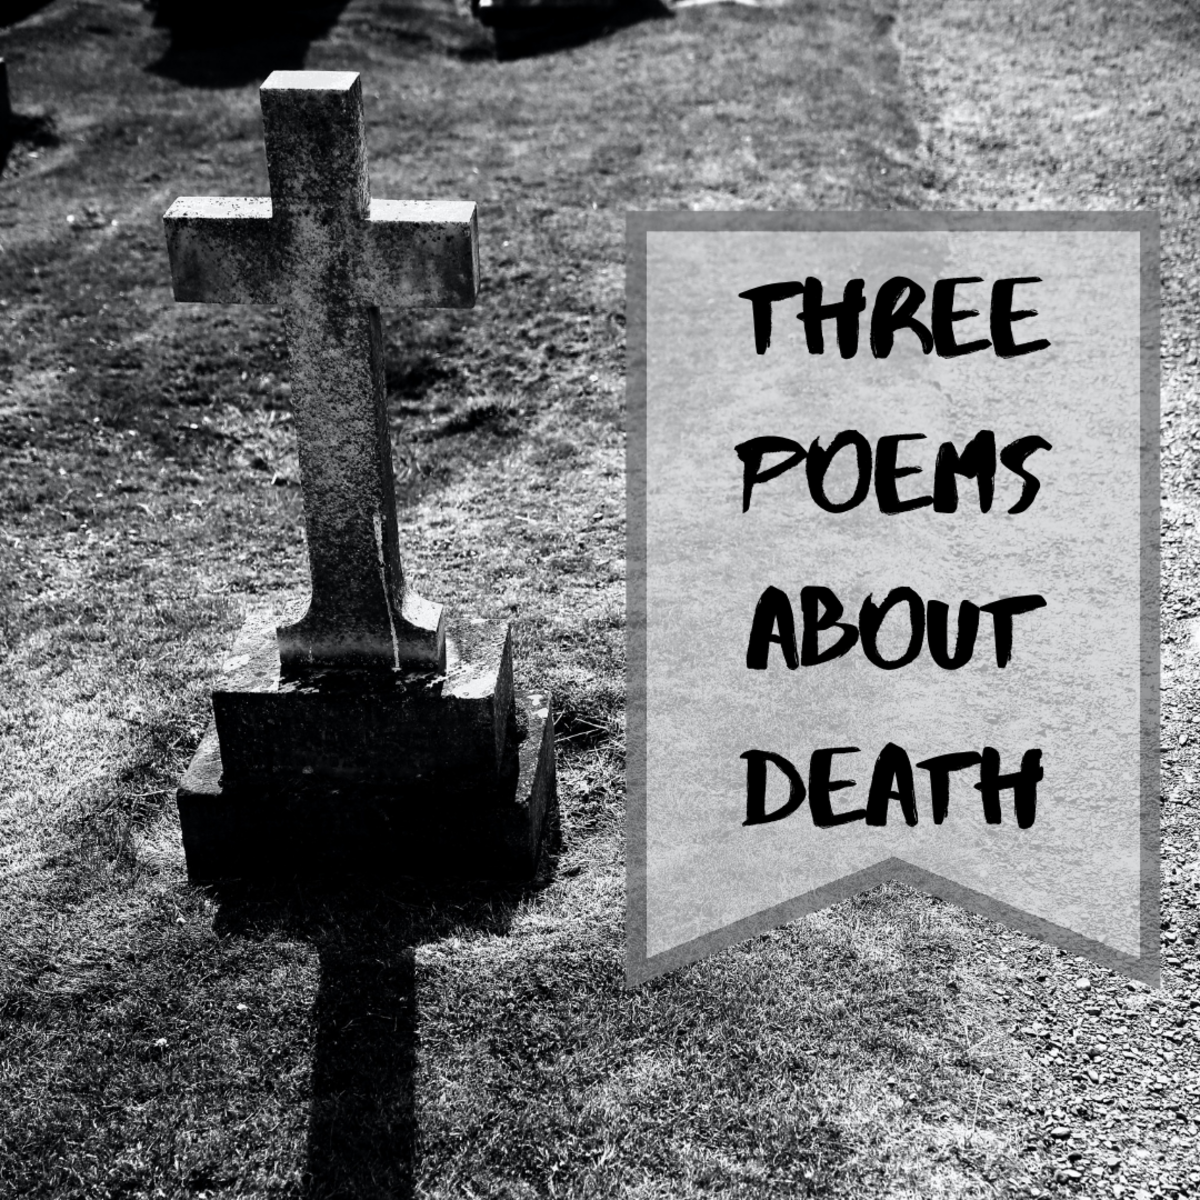 Read and learn about three poems that share the theme of death.